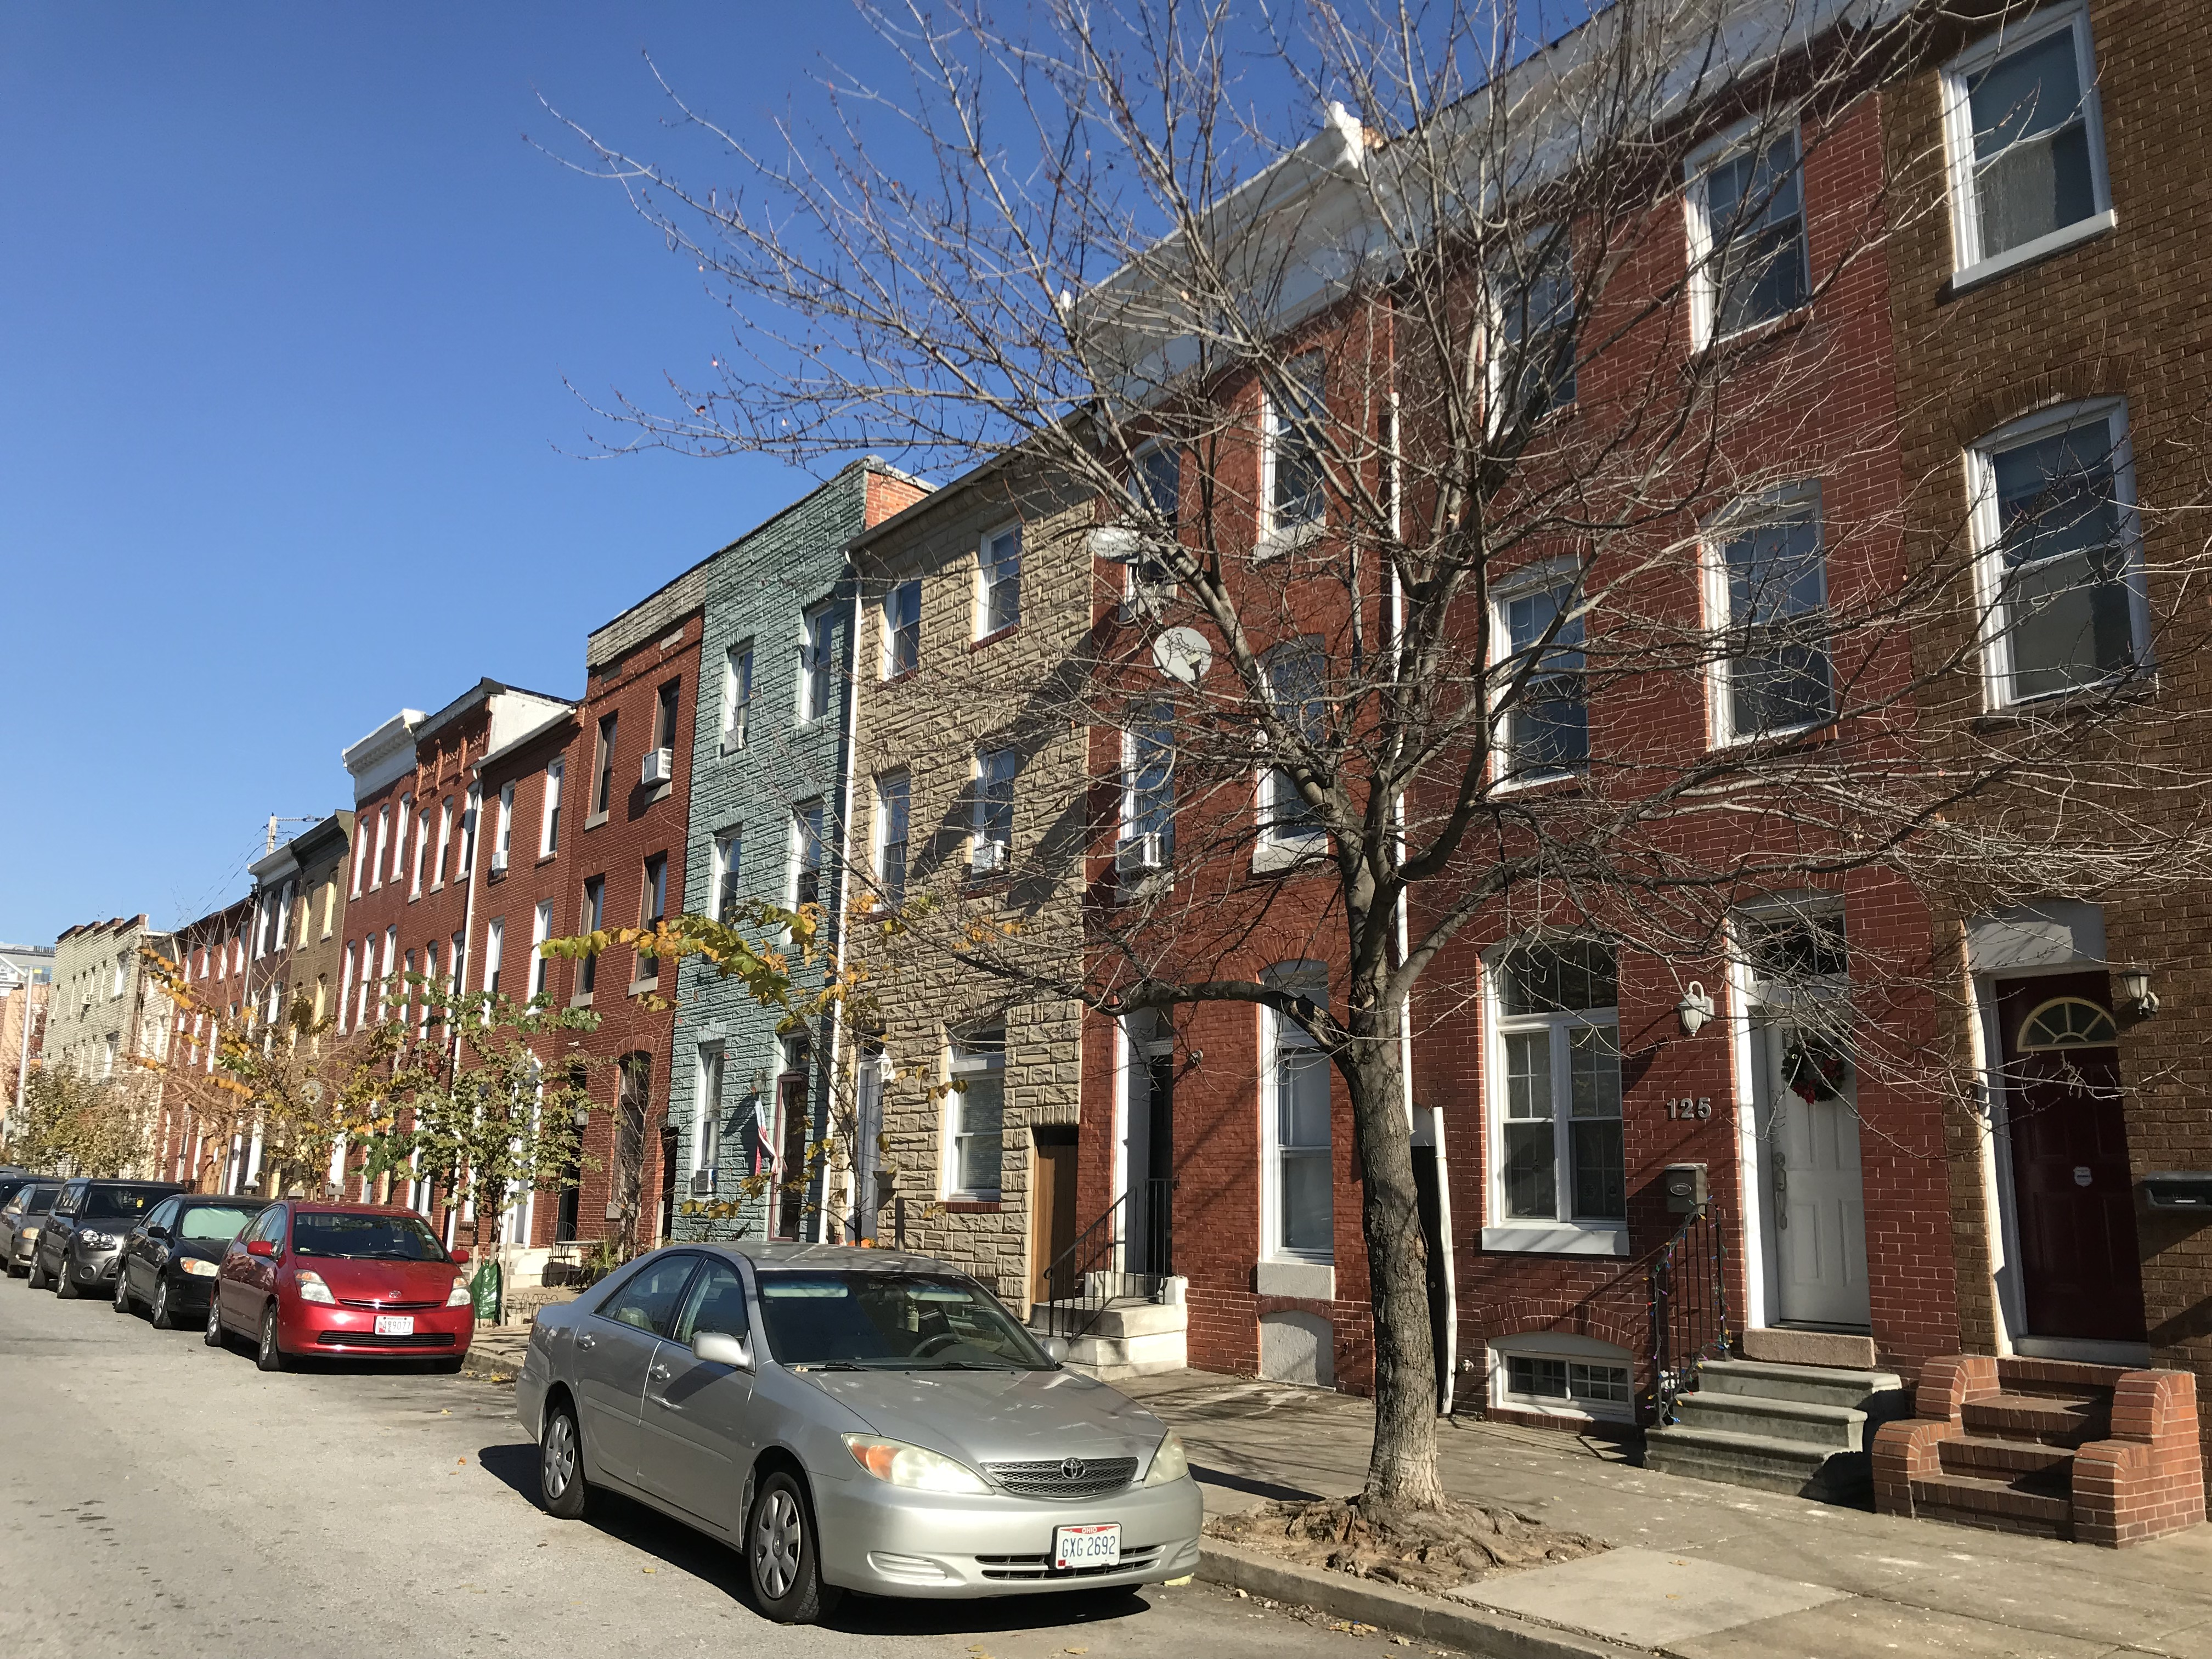 Rowhouses, 100 block of s. ann street (east side), baltimore, md photo